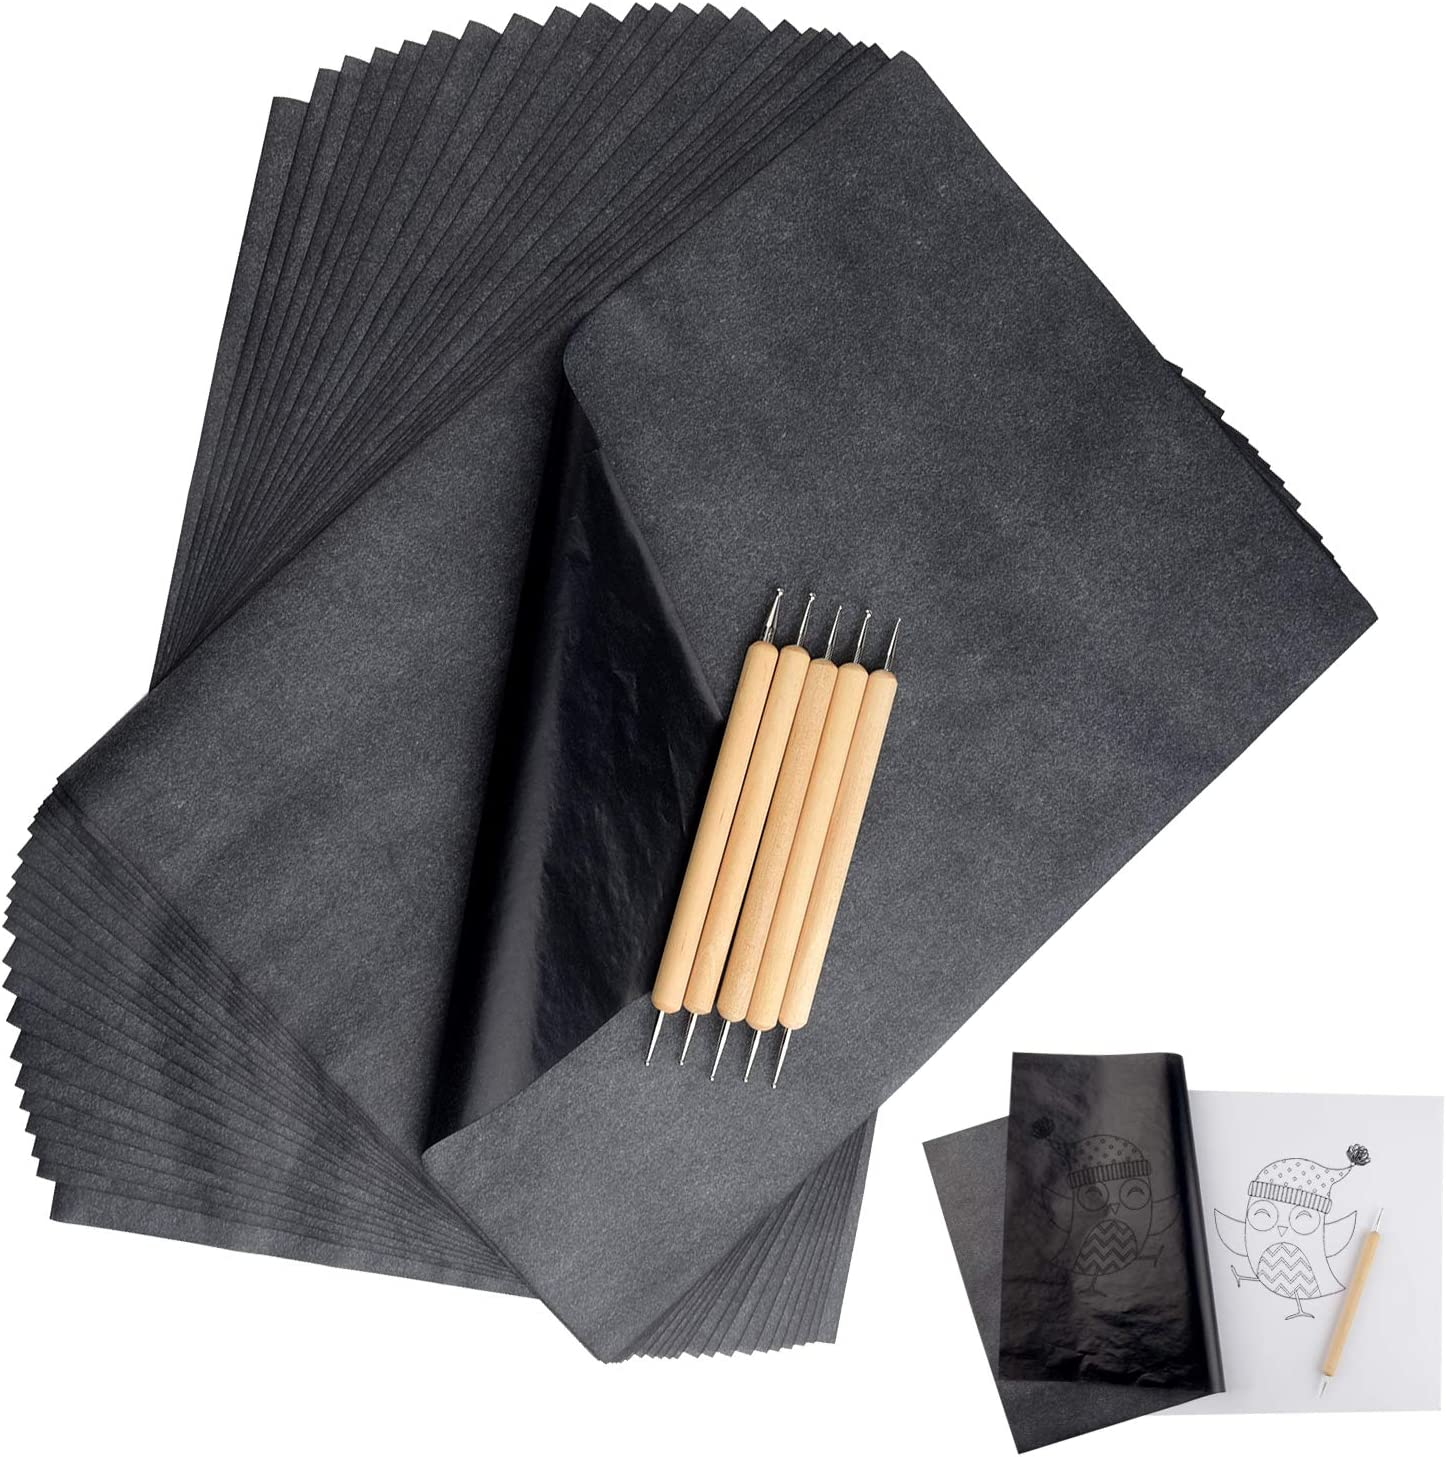 Nisorpa Carbon Transfer Paper 100pcs Carbon Graphite Papers Black Coping Drawing Tracing Paper Sheets 2333CM//913INCH for Wood Paper Canvas Fabric DIY Craft Art